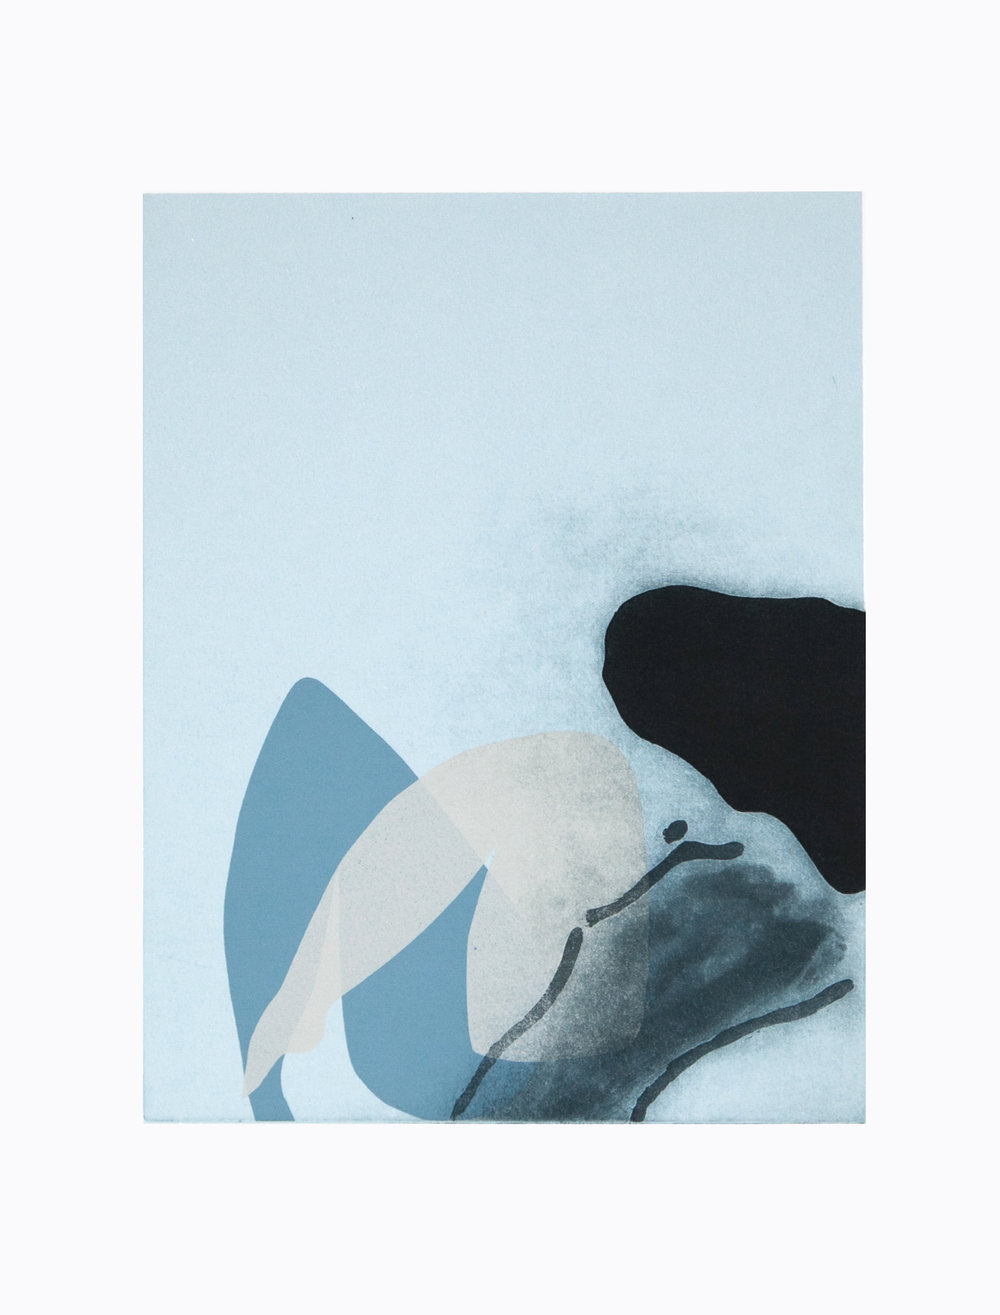 'Inner Moments III', screen print on paper, 39x28cm